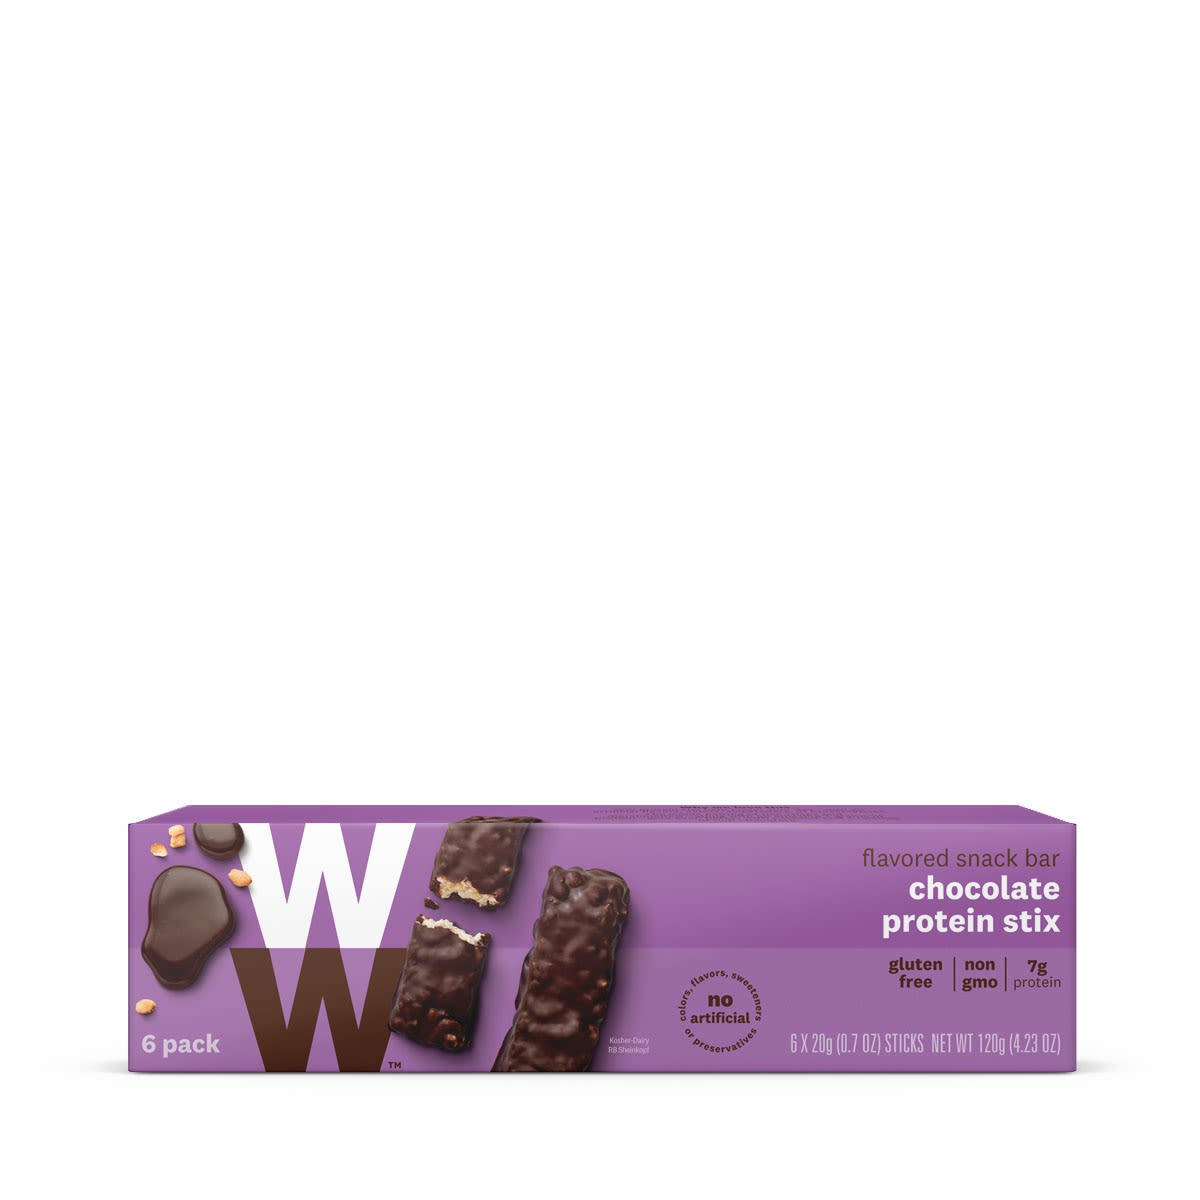 Chocolate Protein Stix, front of box, 6 pack, gluten free, 7g of protein